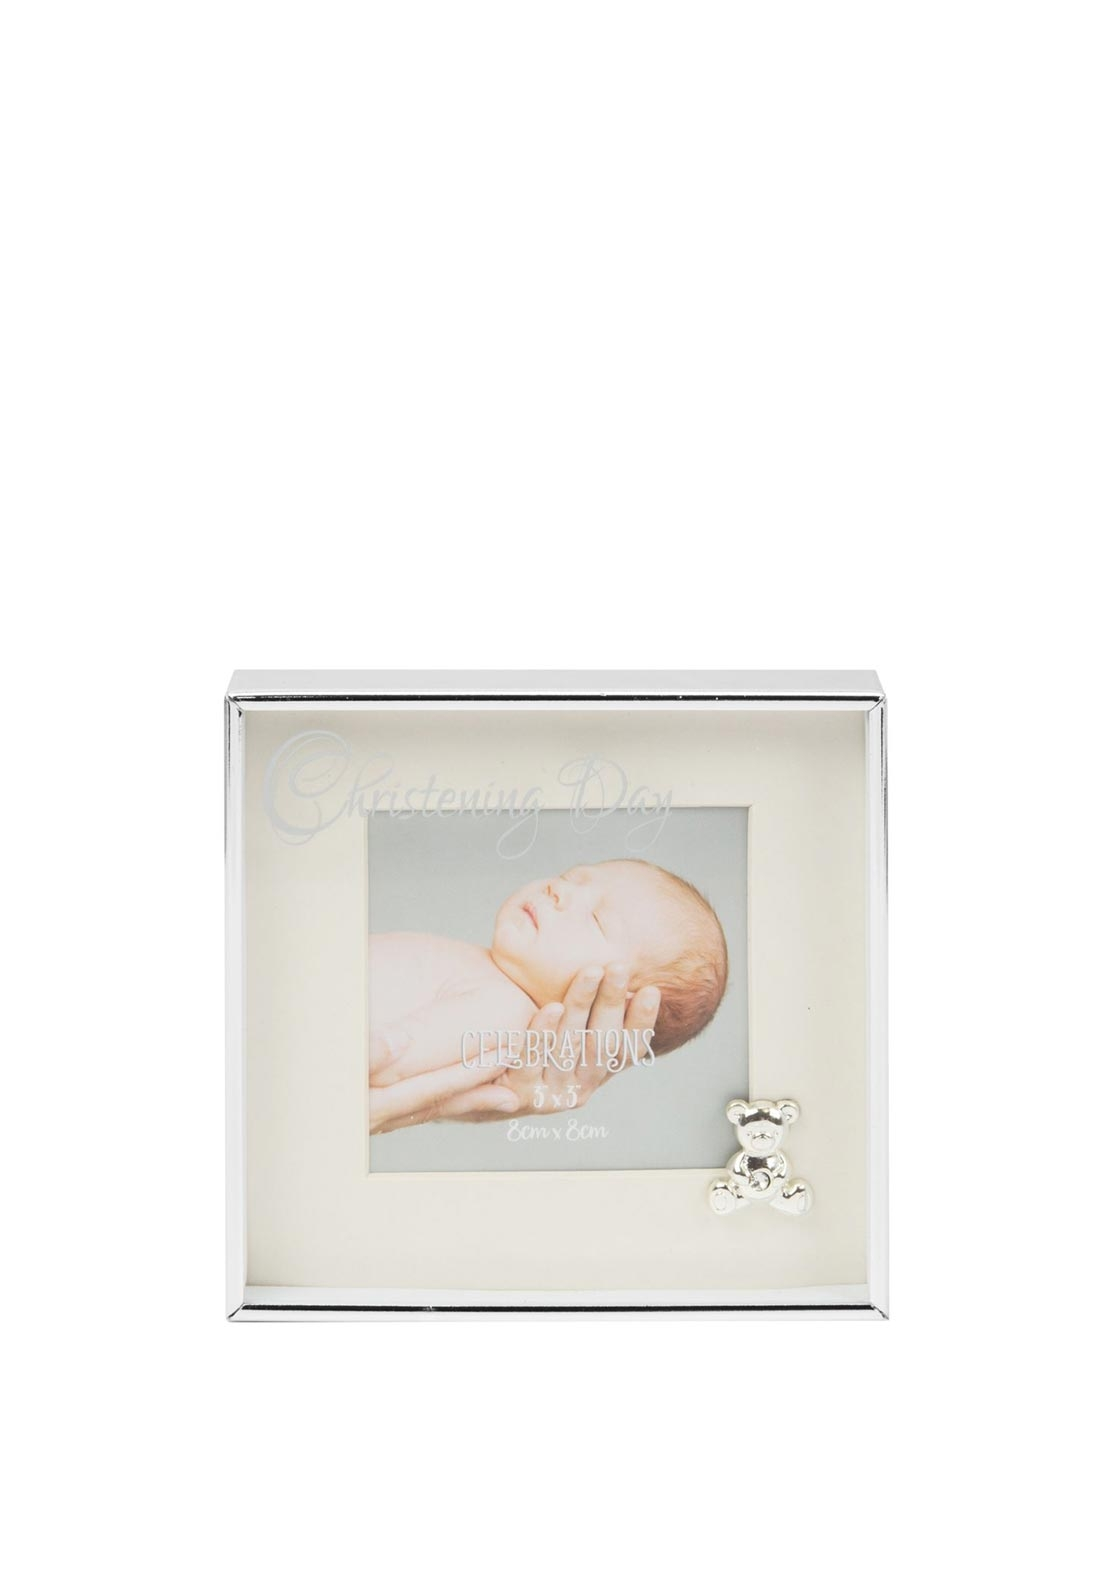 "Widdop Bingham 3"" x 3"" Silver Plated Box Frame, Christening Day"